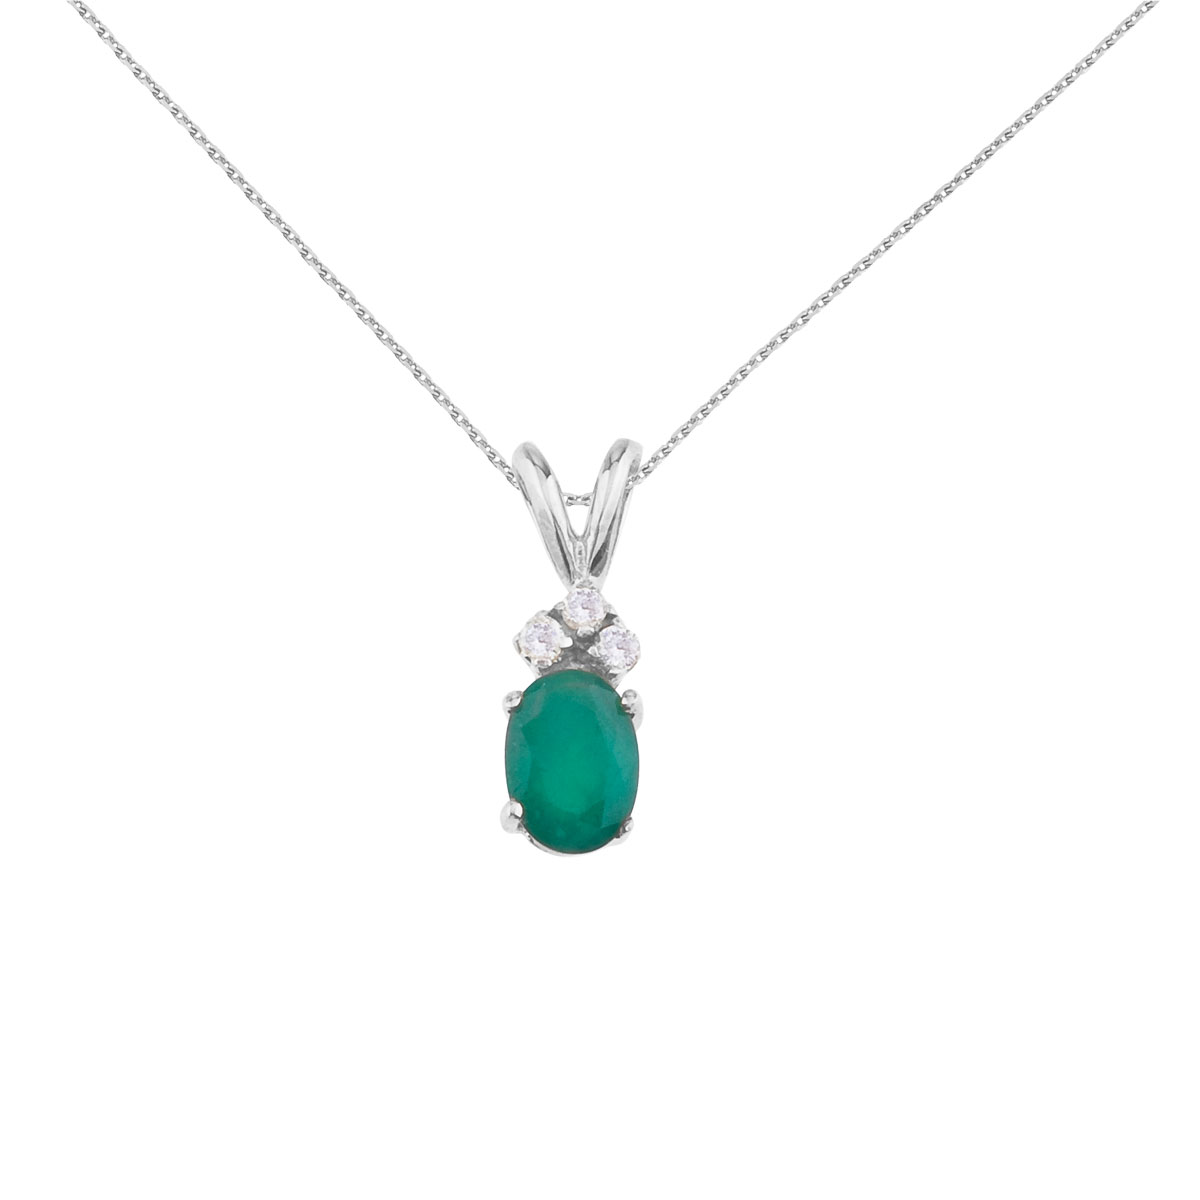 7x5 mm oval natural emerald pendant topped with 3 bright diamonds set in 14k white gold.